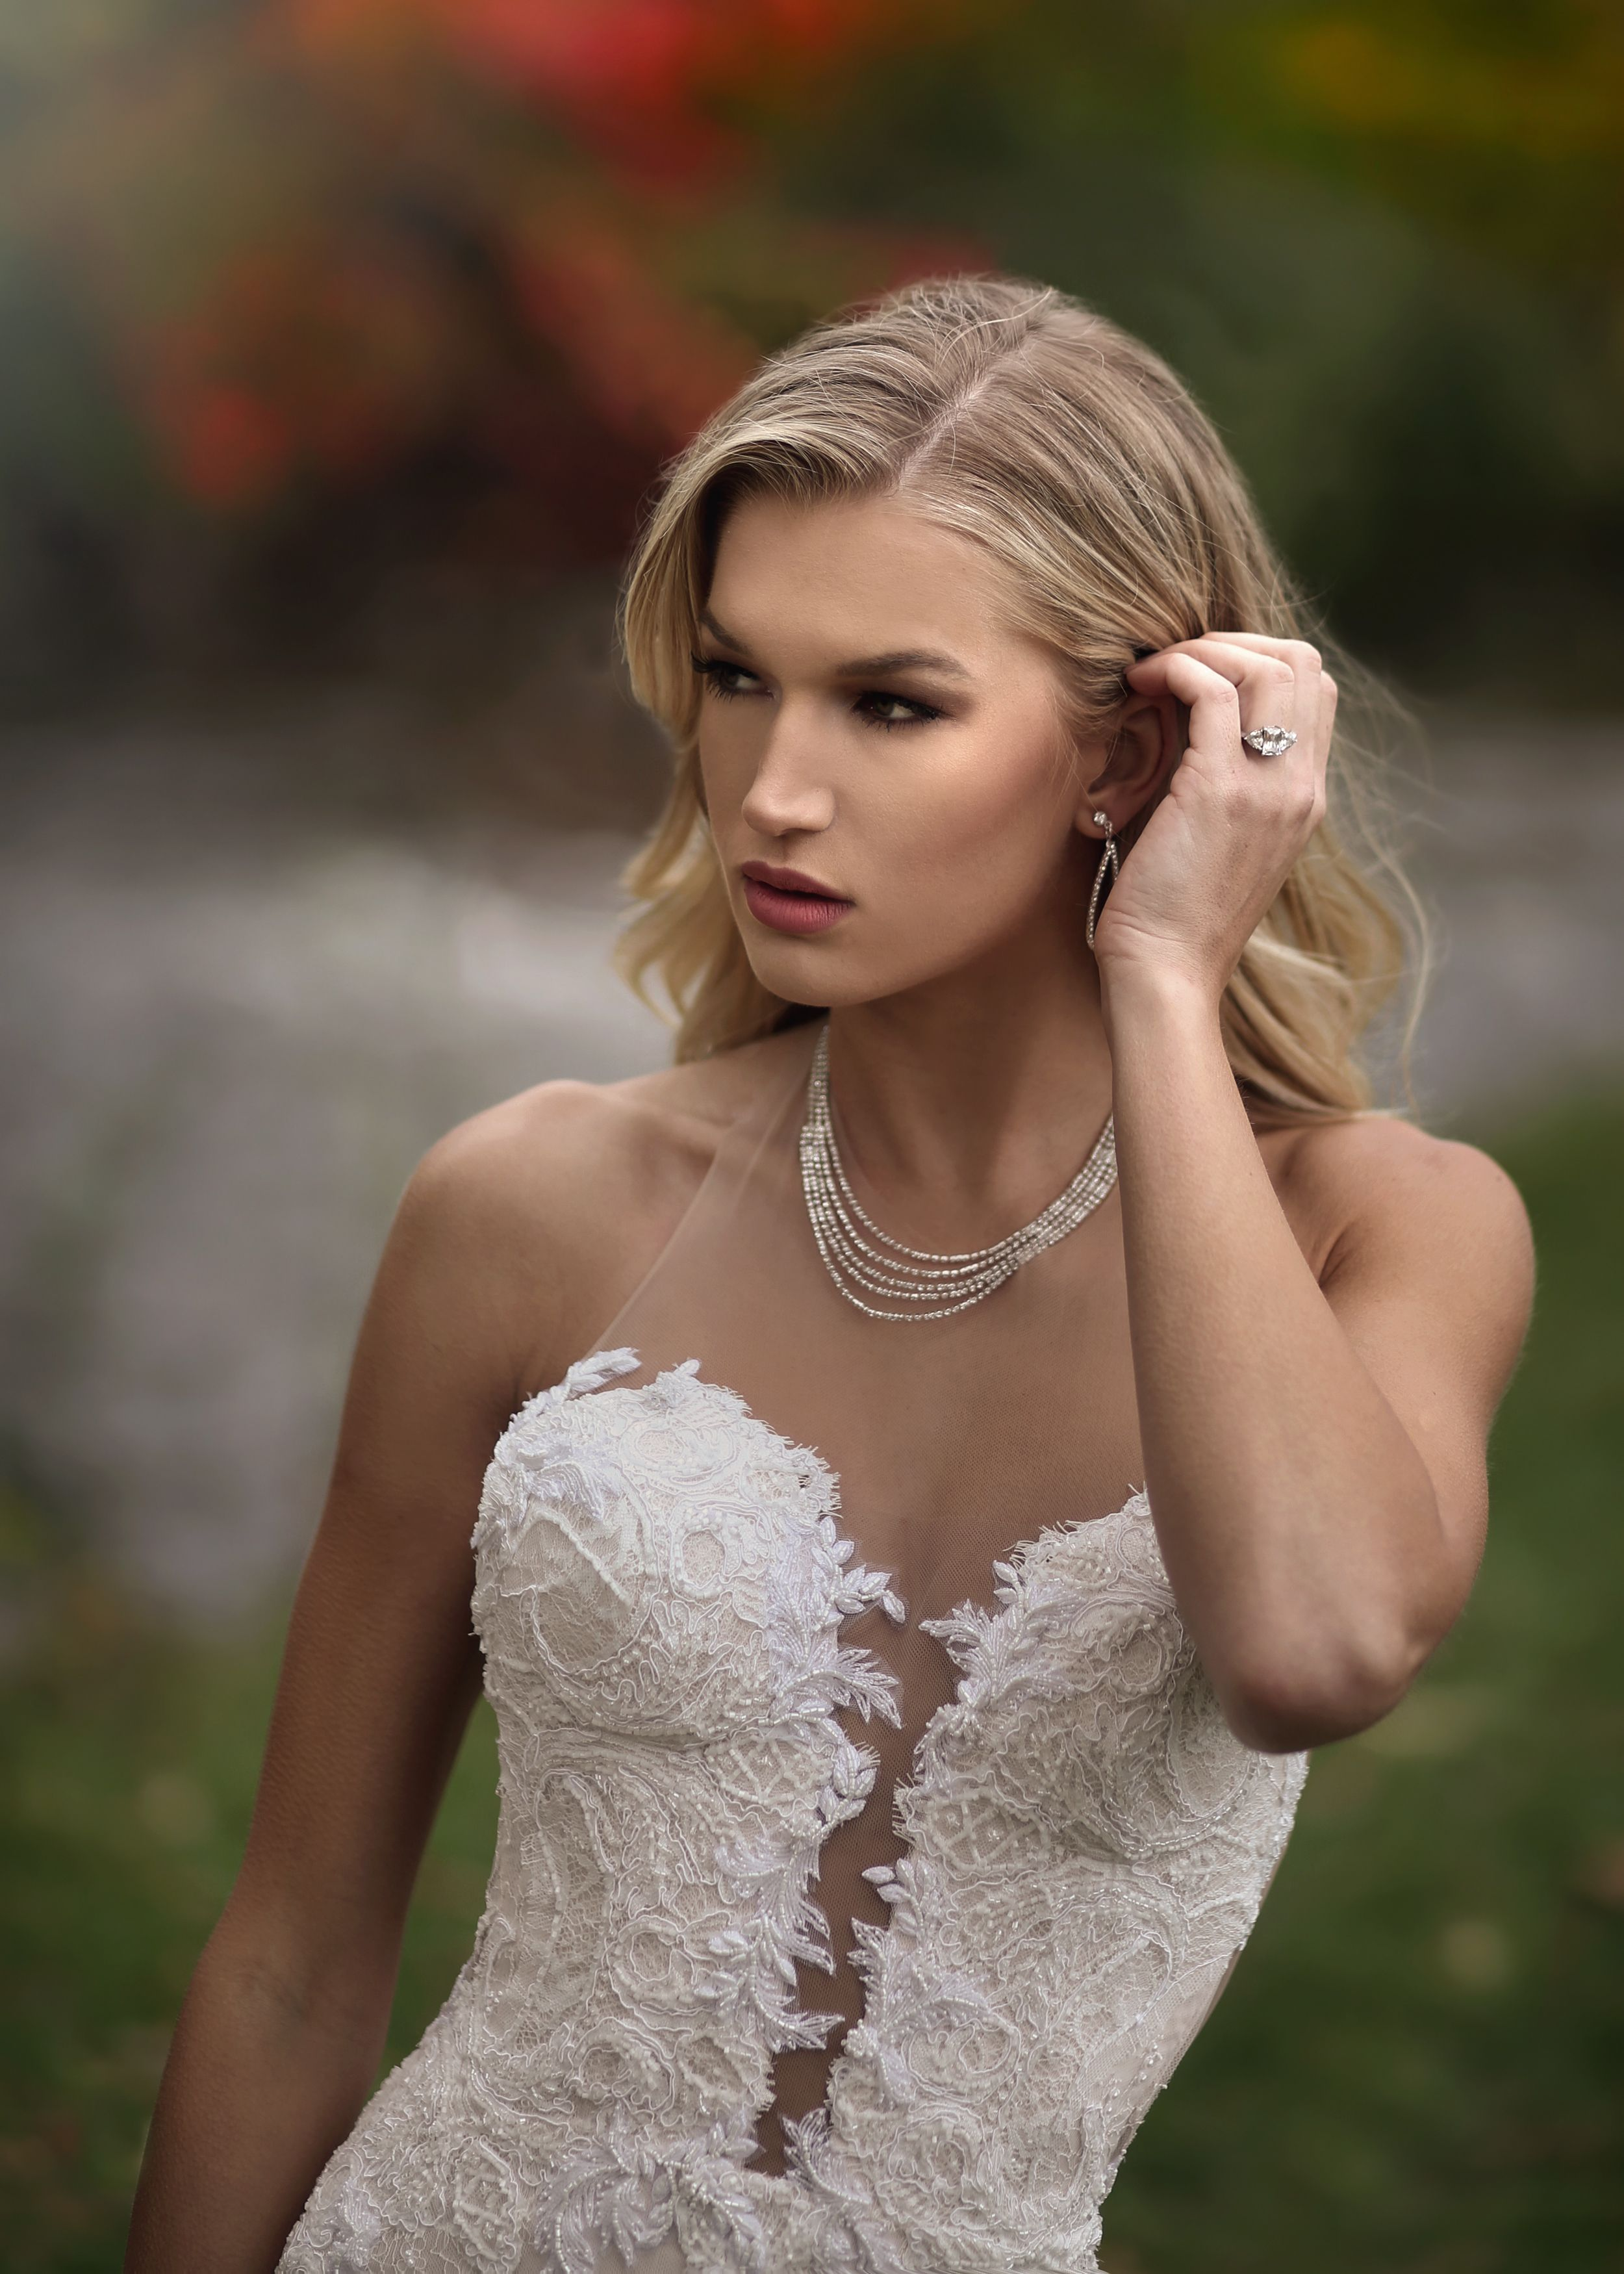 Plunging Neckline Lace Wedding Dresses From Solutions Bridal In Orlando Florida Dress